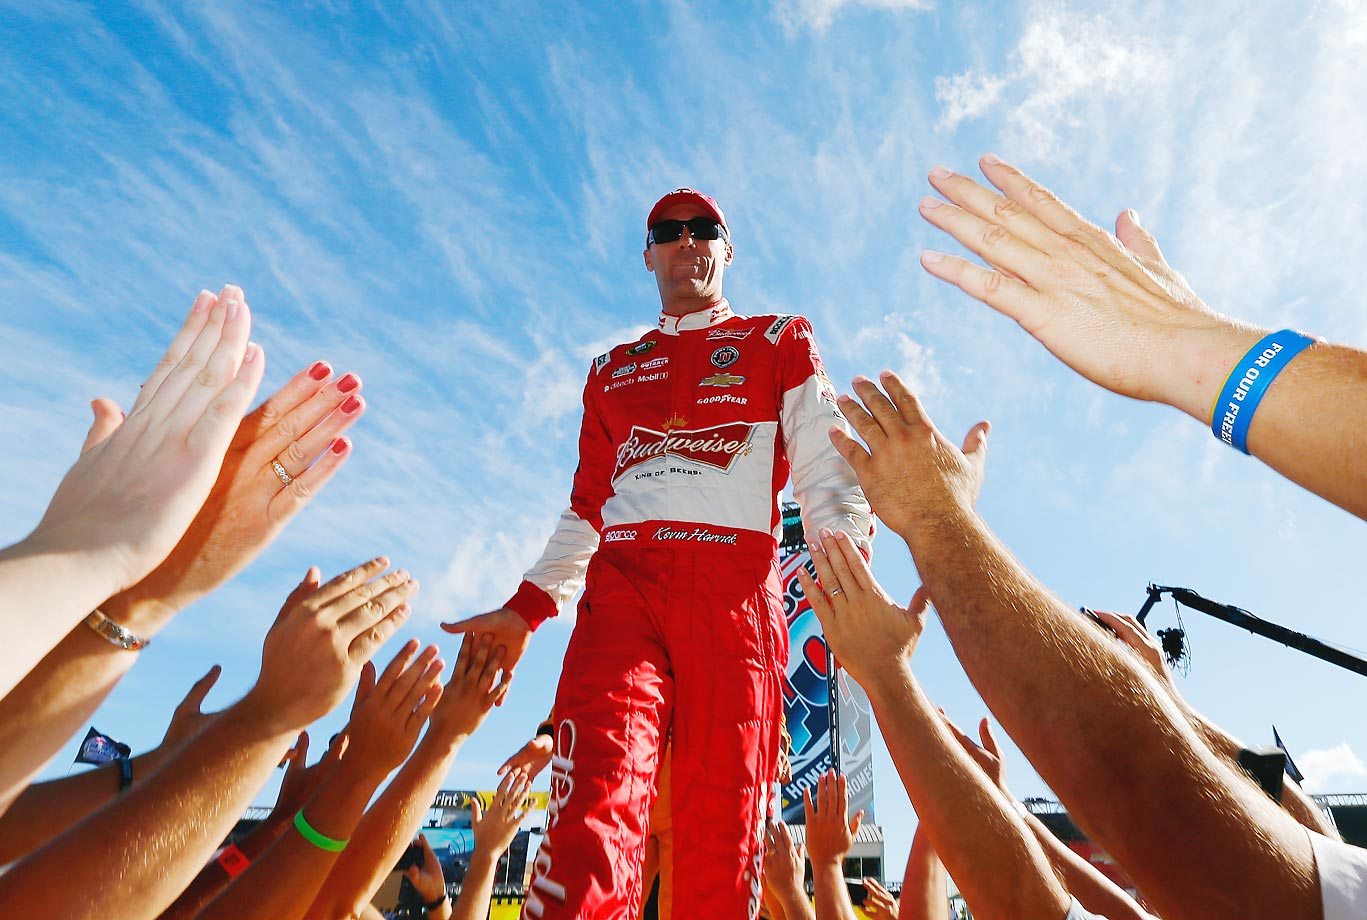 Kevin Harvick is introduced during pre-race ceremonies for the NASCAR Sprint Cup Series Ford EcoBoost 400 in Homestead, Fla.